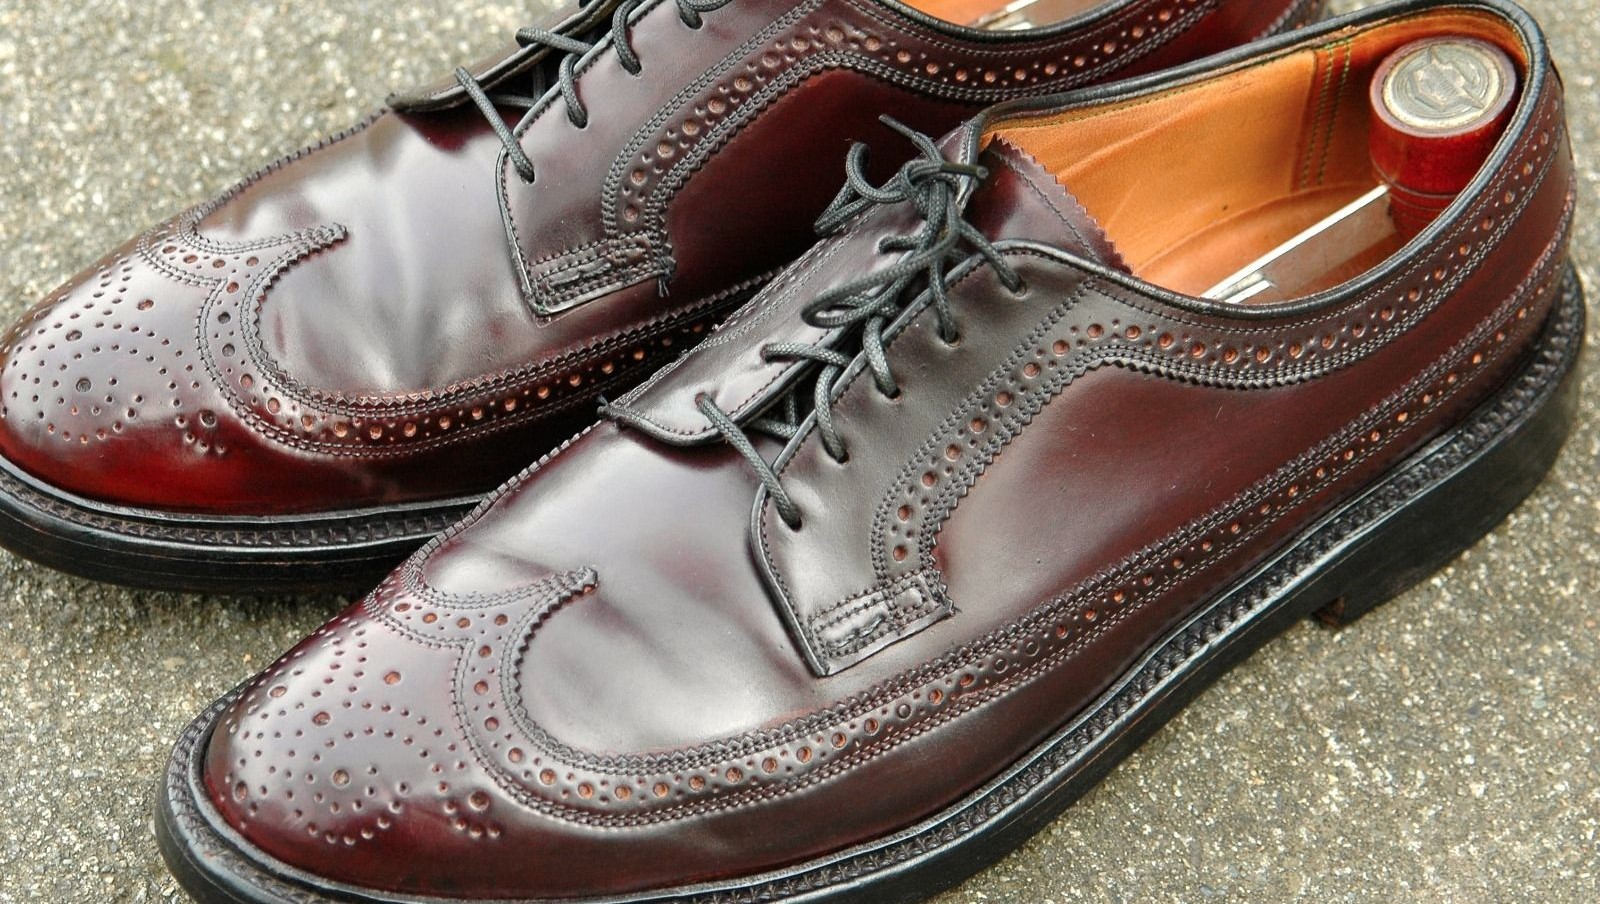 SPECIALS 30% OFF FLORSHEIM SHOES: Select styles and colors only. Discount may not be applied to clearance, gift center purchases/engravables, Exceptional Value products, tuxedo rentals or the fees and taxes associated thereto, or toward the purchase of gift cards.